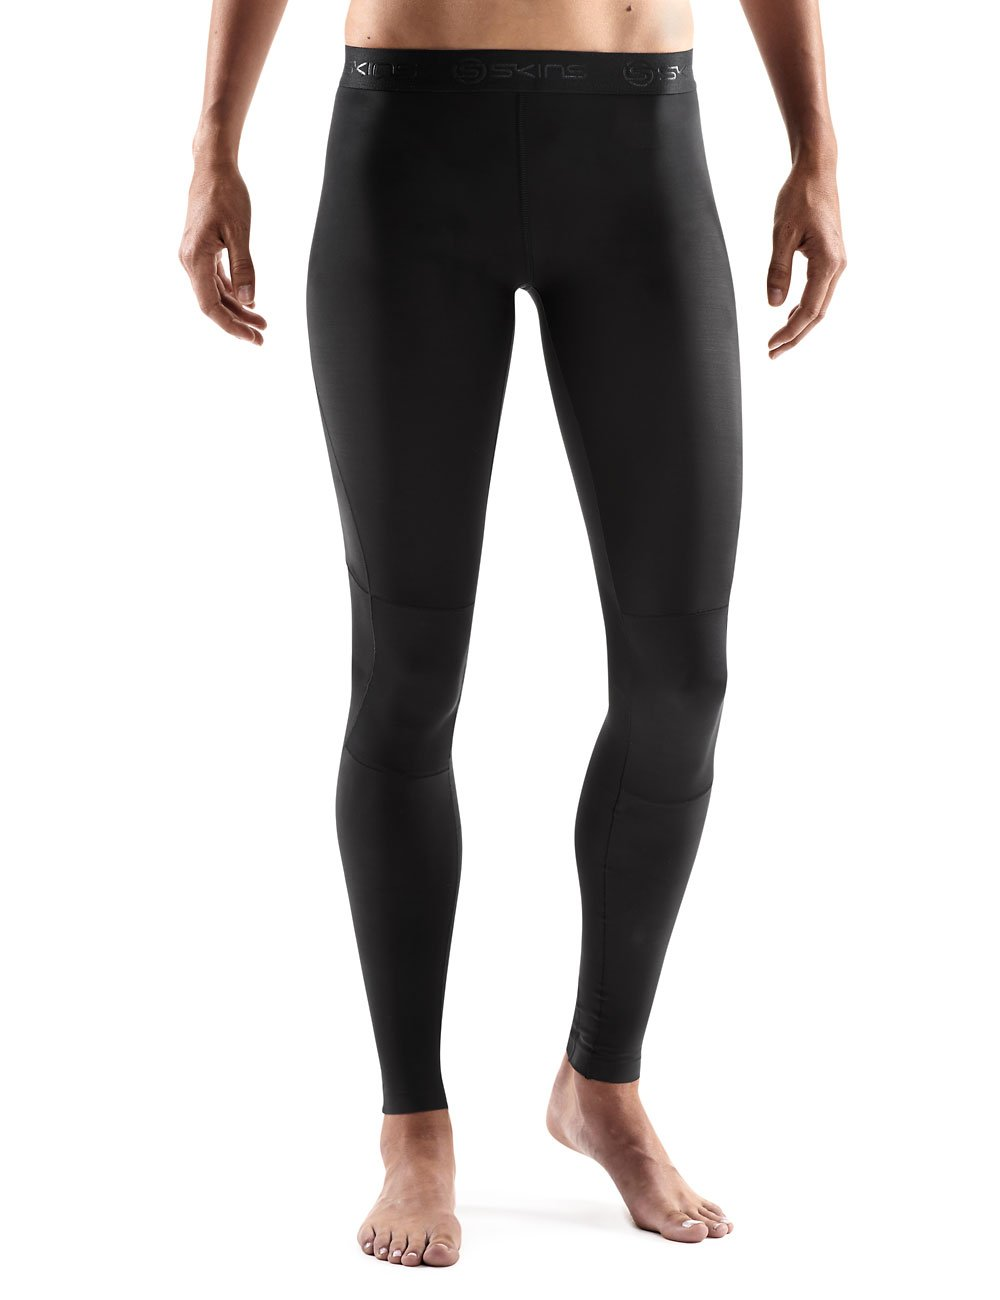 SKINS Women's RY400 Compression Recovery Tights, Black/Black, Small